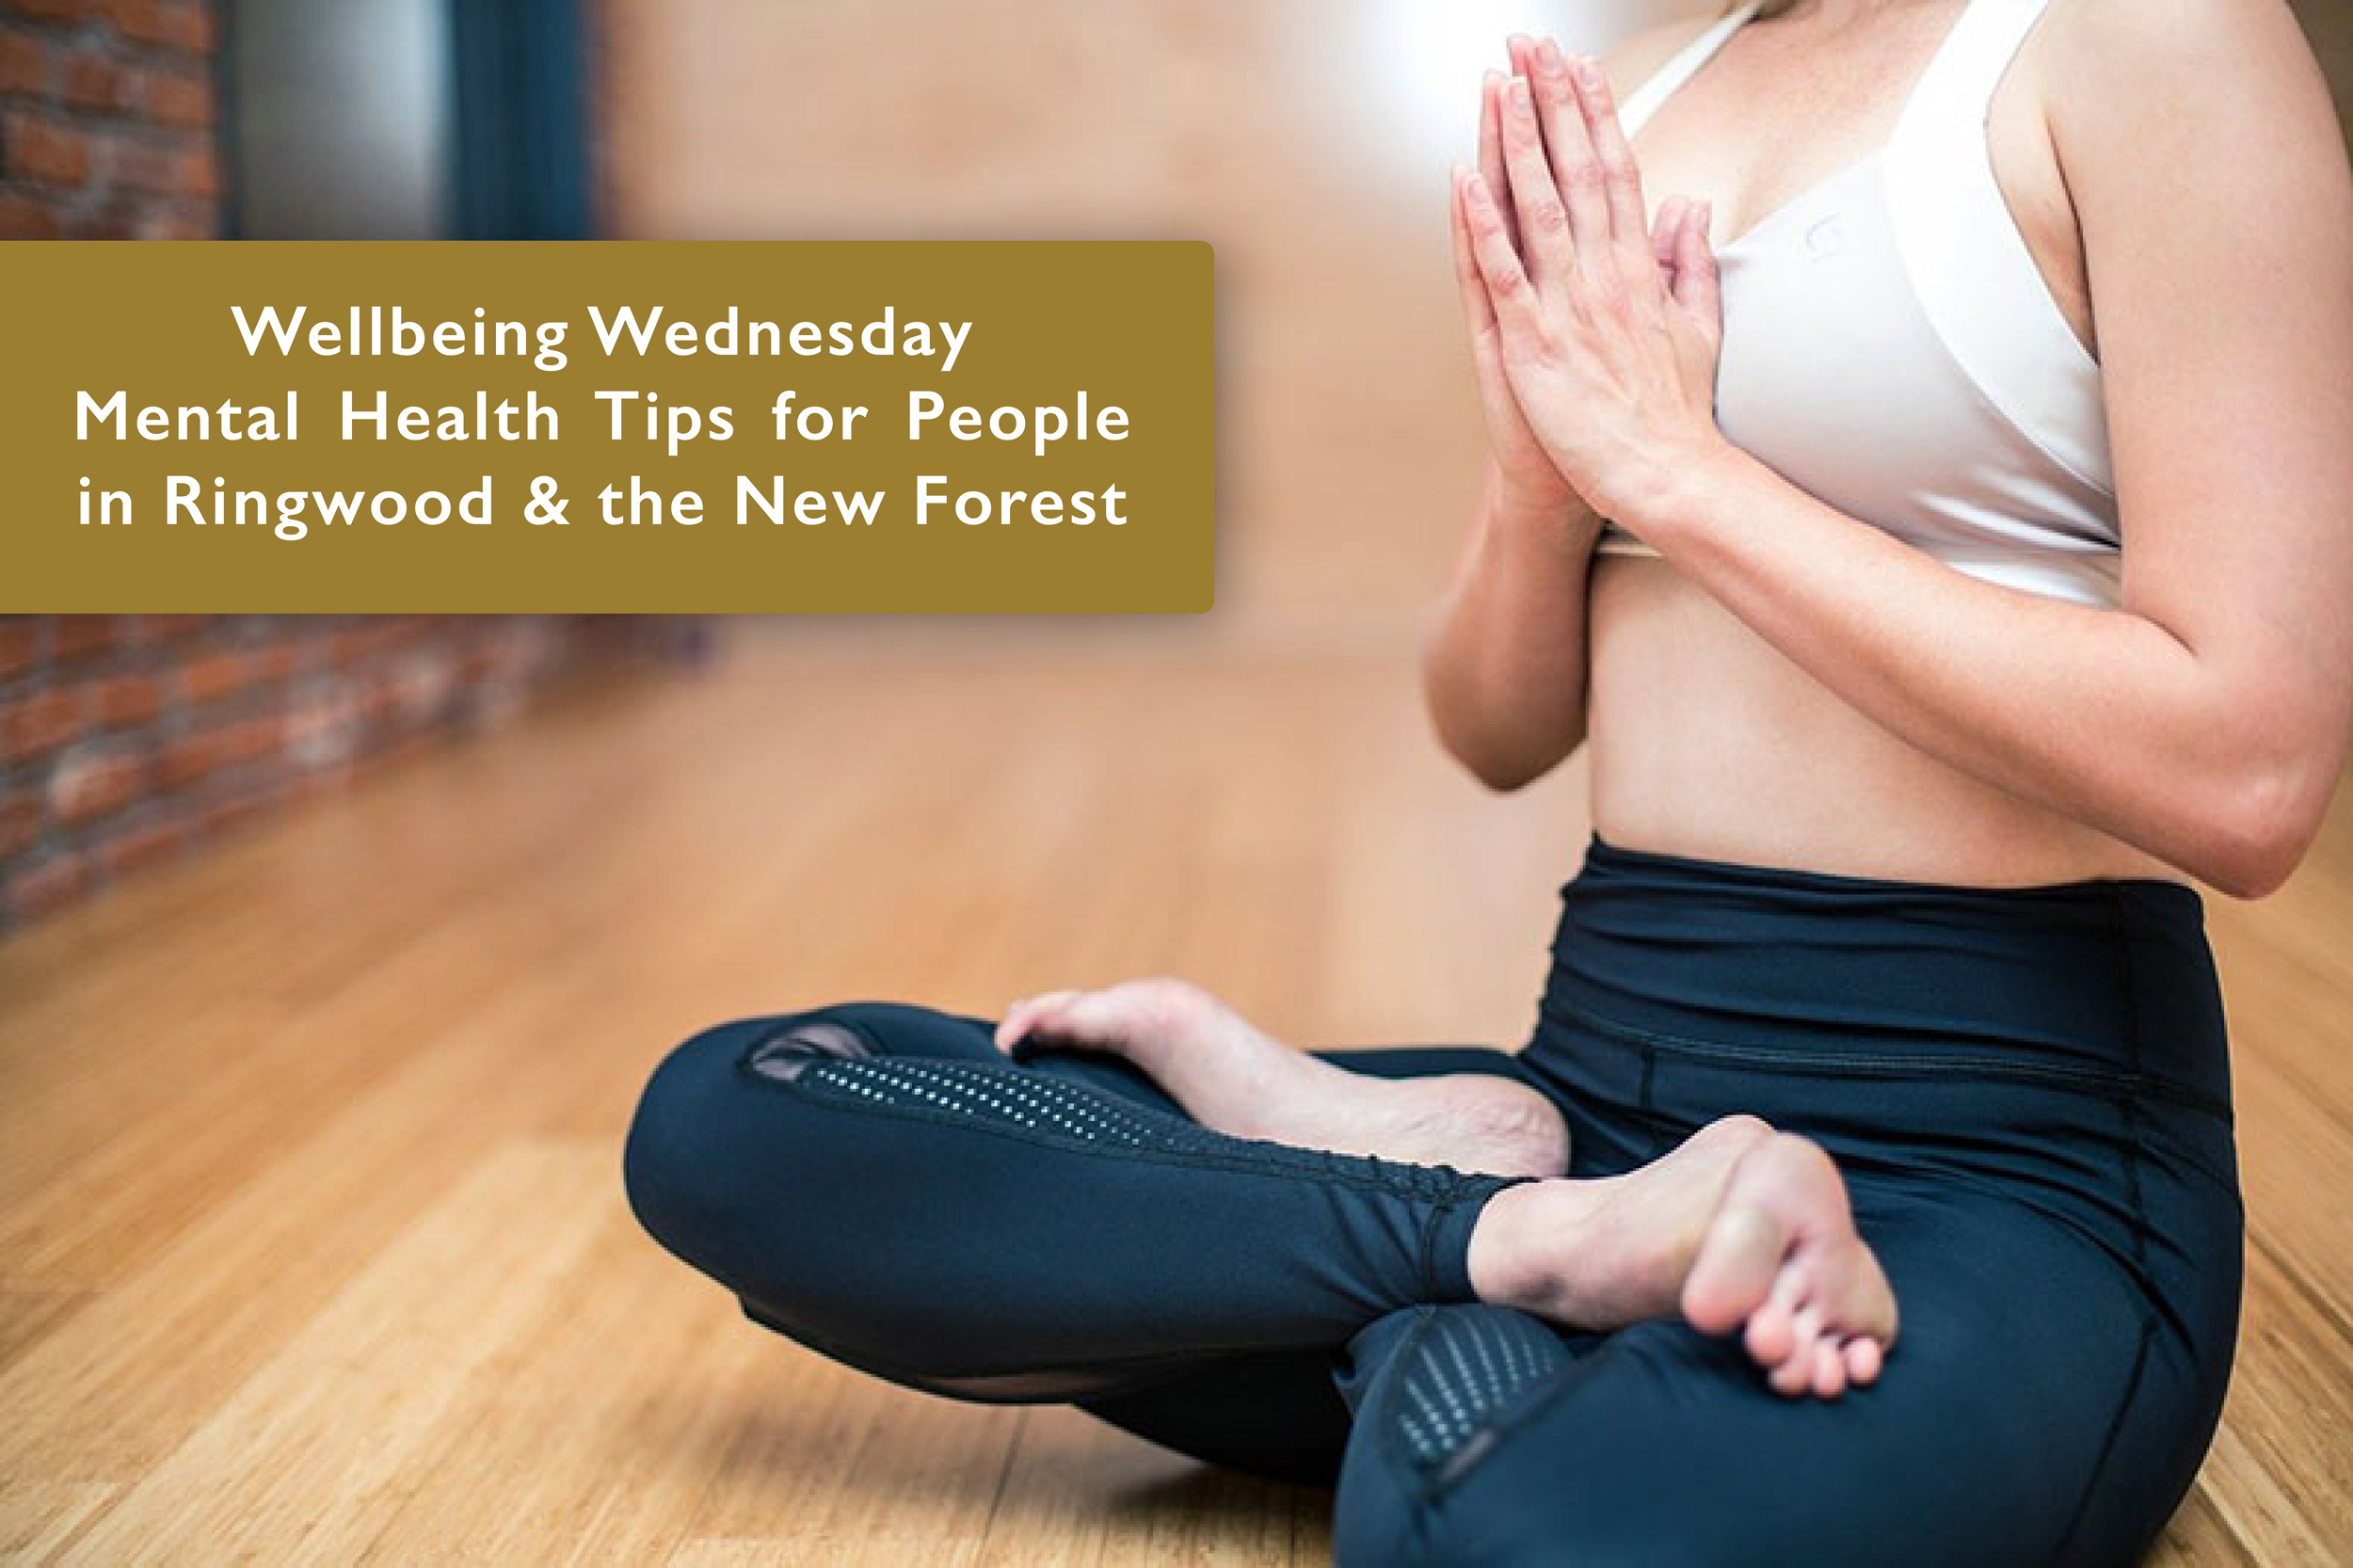 Wellbeing Wednesday – Mental Health Tips for People in Ringwood & the New Forest